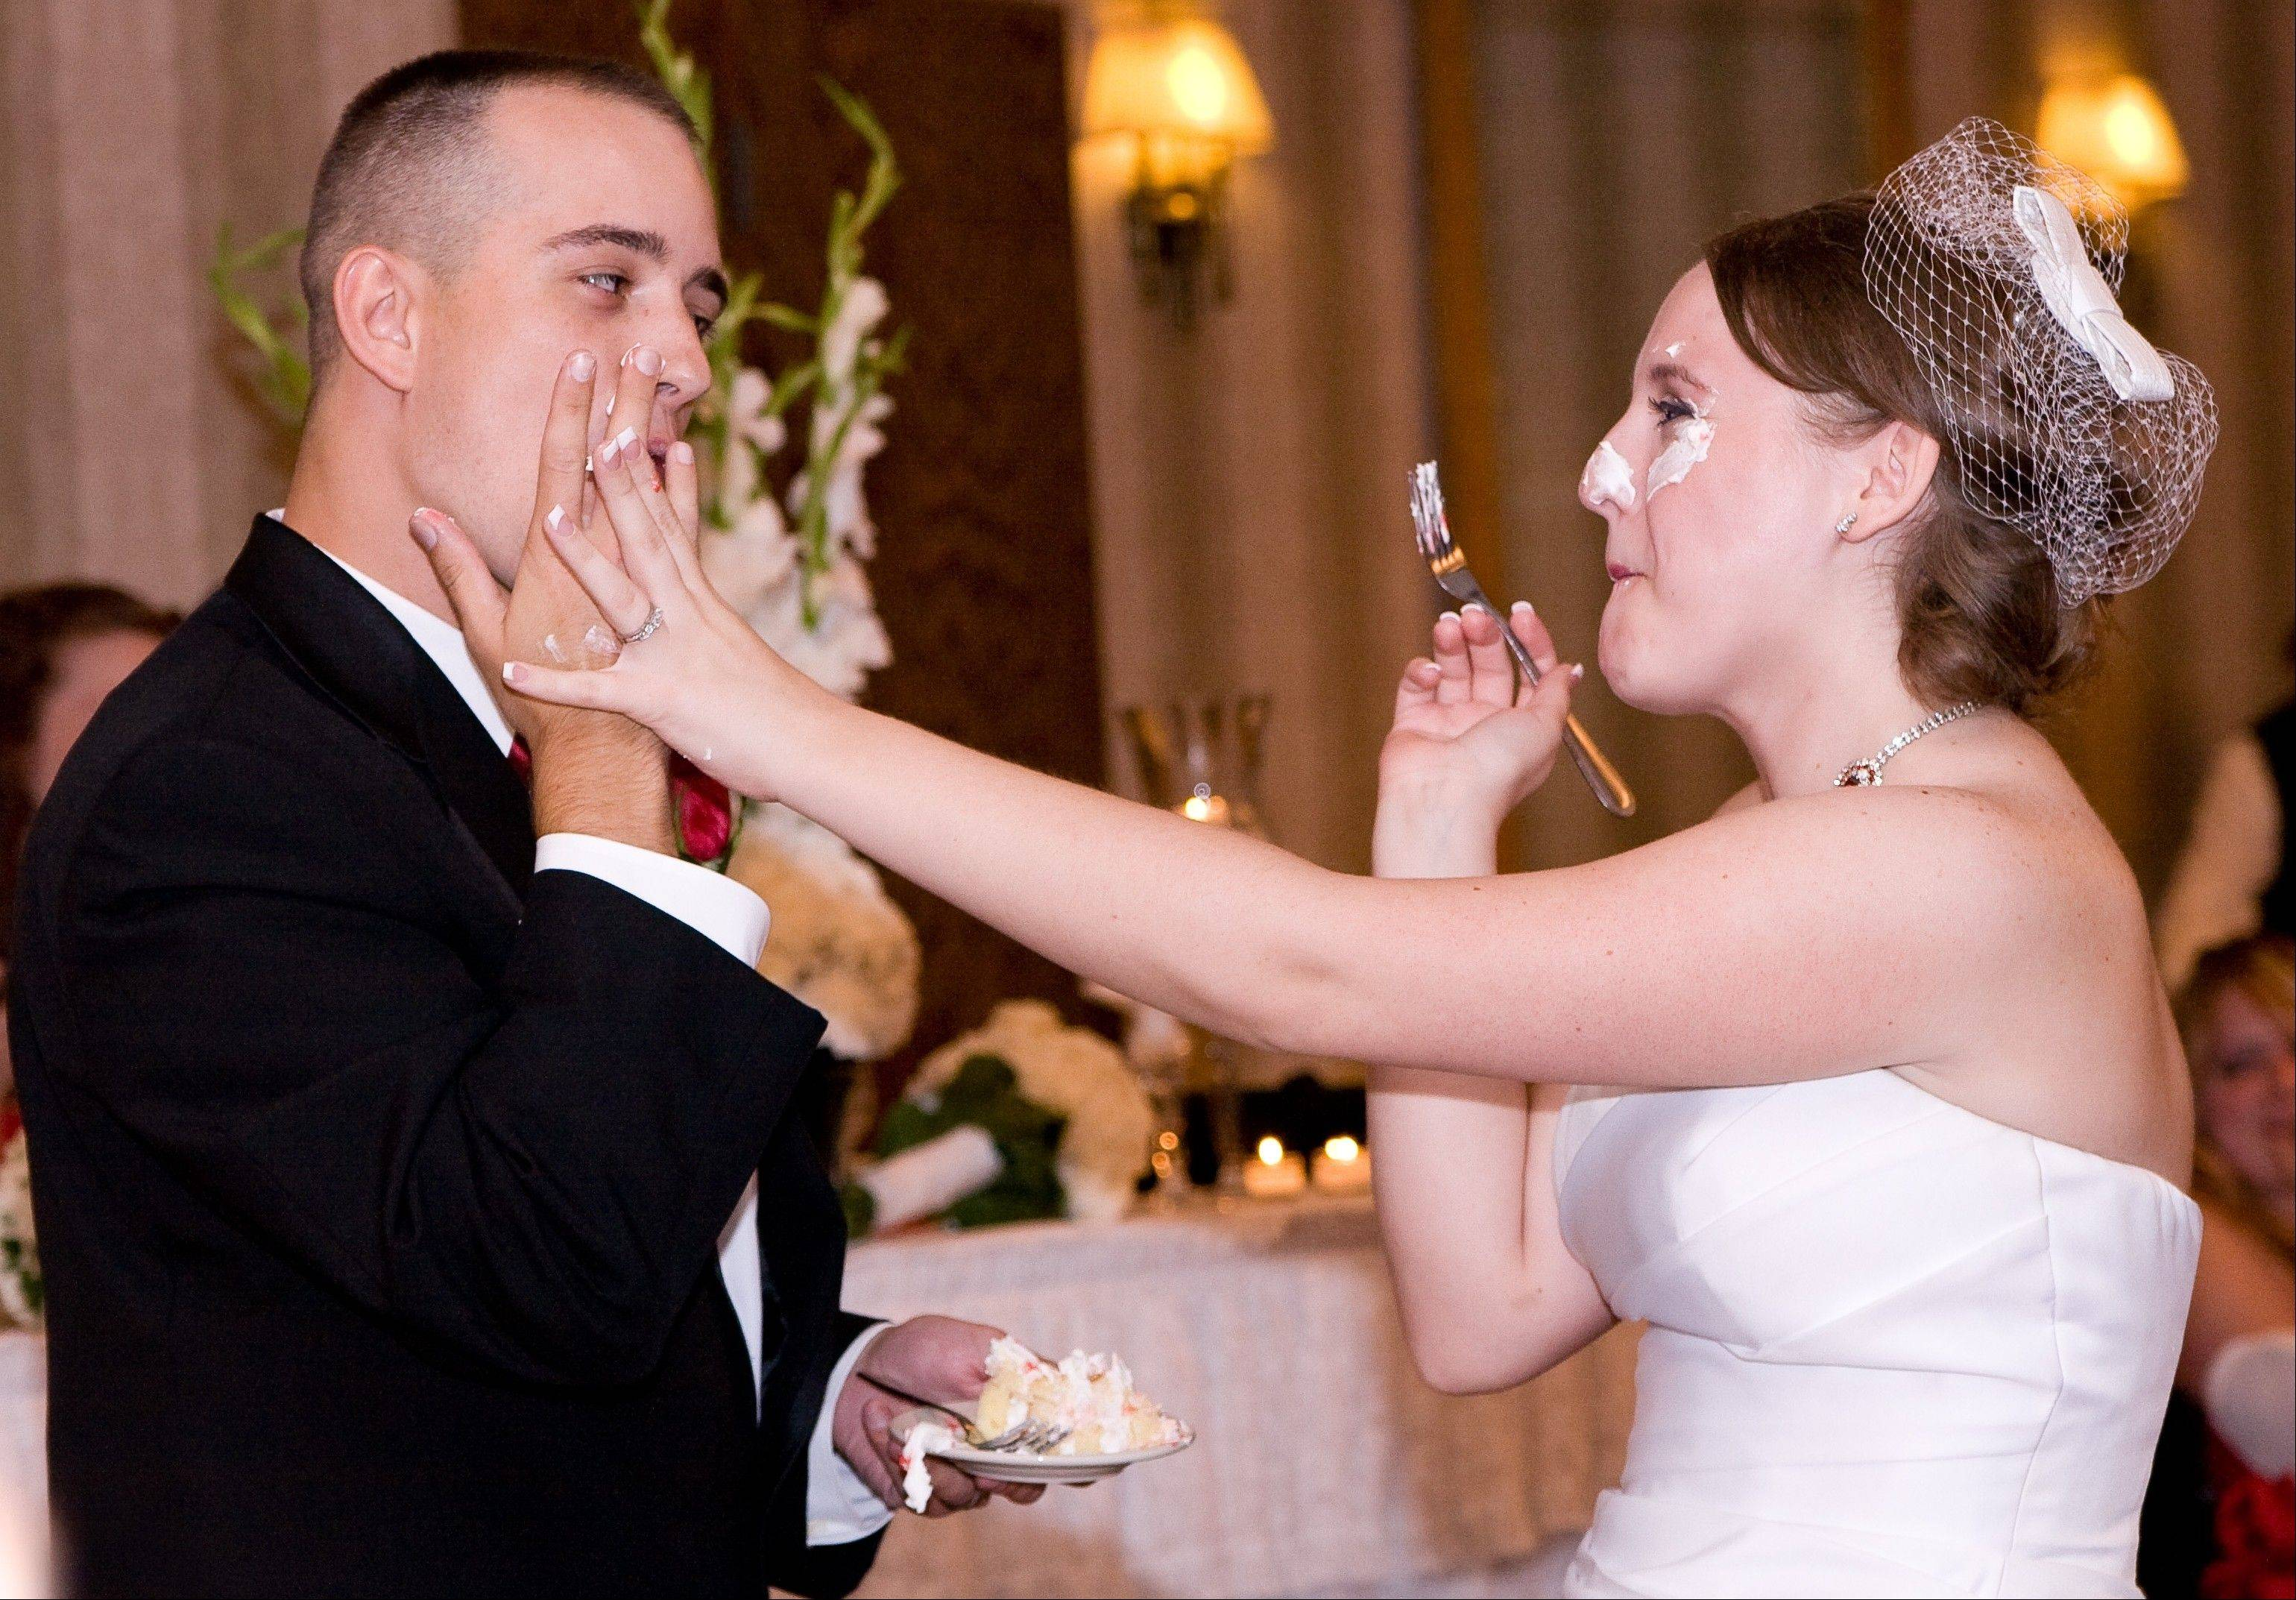 Tyson and Sarah Jones of Portsmouth, Va., shove cake into each other's faces at their wedding in June 2010. I was able to capture a fun moment between this couple, because they forgot for a brief moment that they were being photographed.